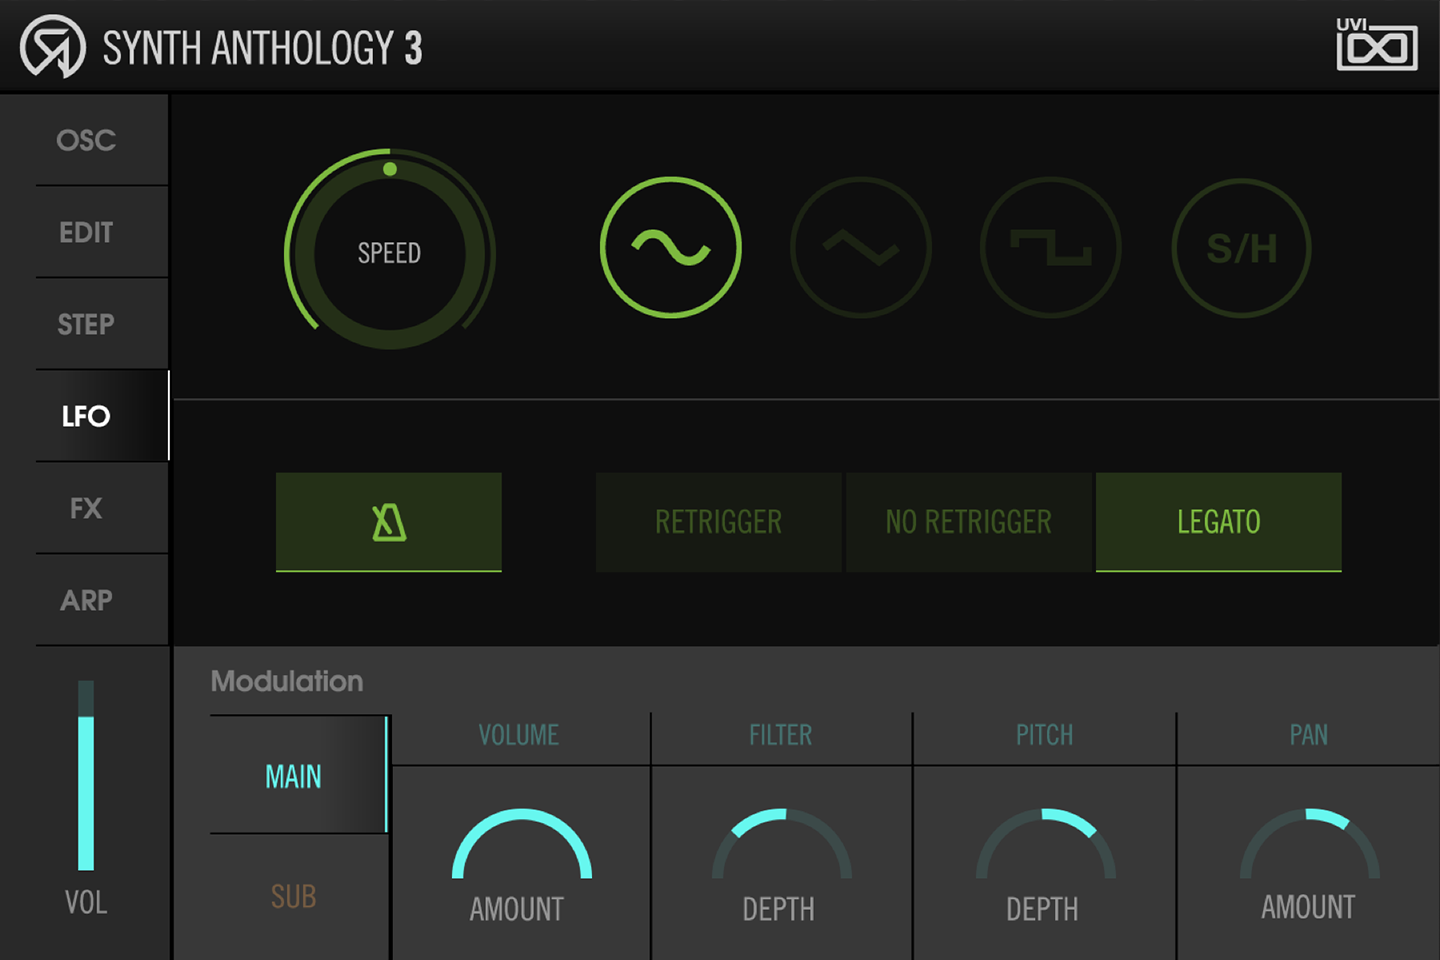 UVI Synth Anthology 3 | LFO Page